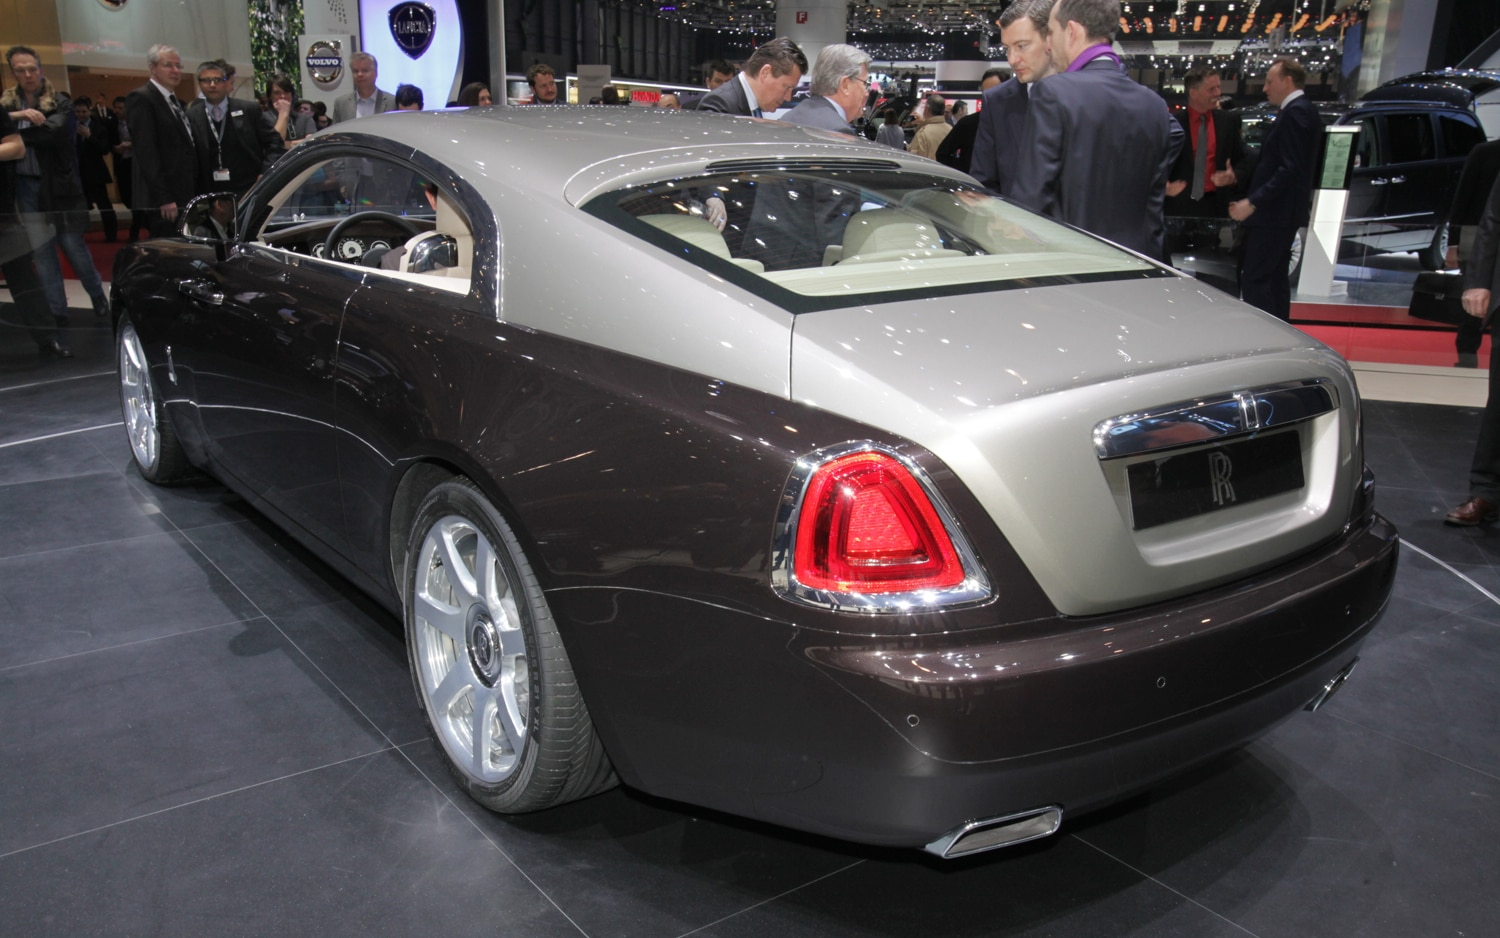 First Look: 2014 Rolls-Royce Wraith - Automobile Magazine